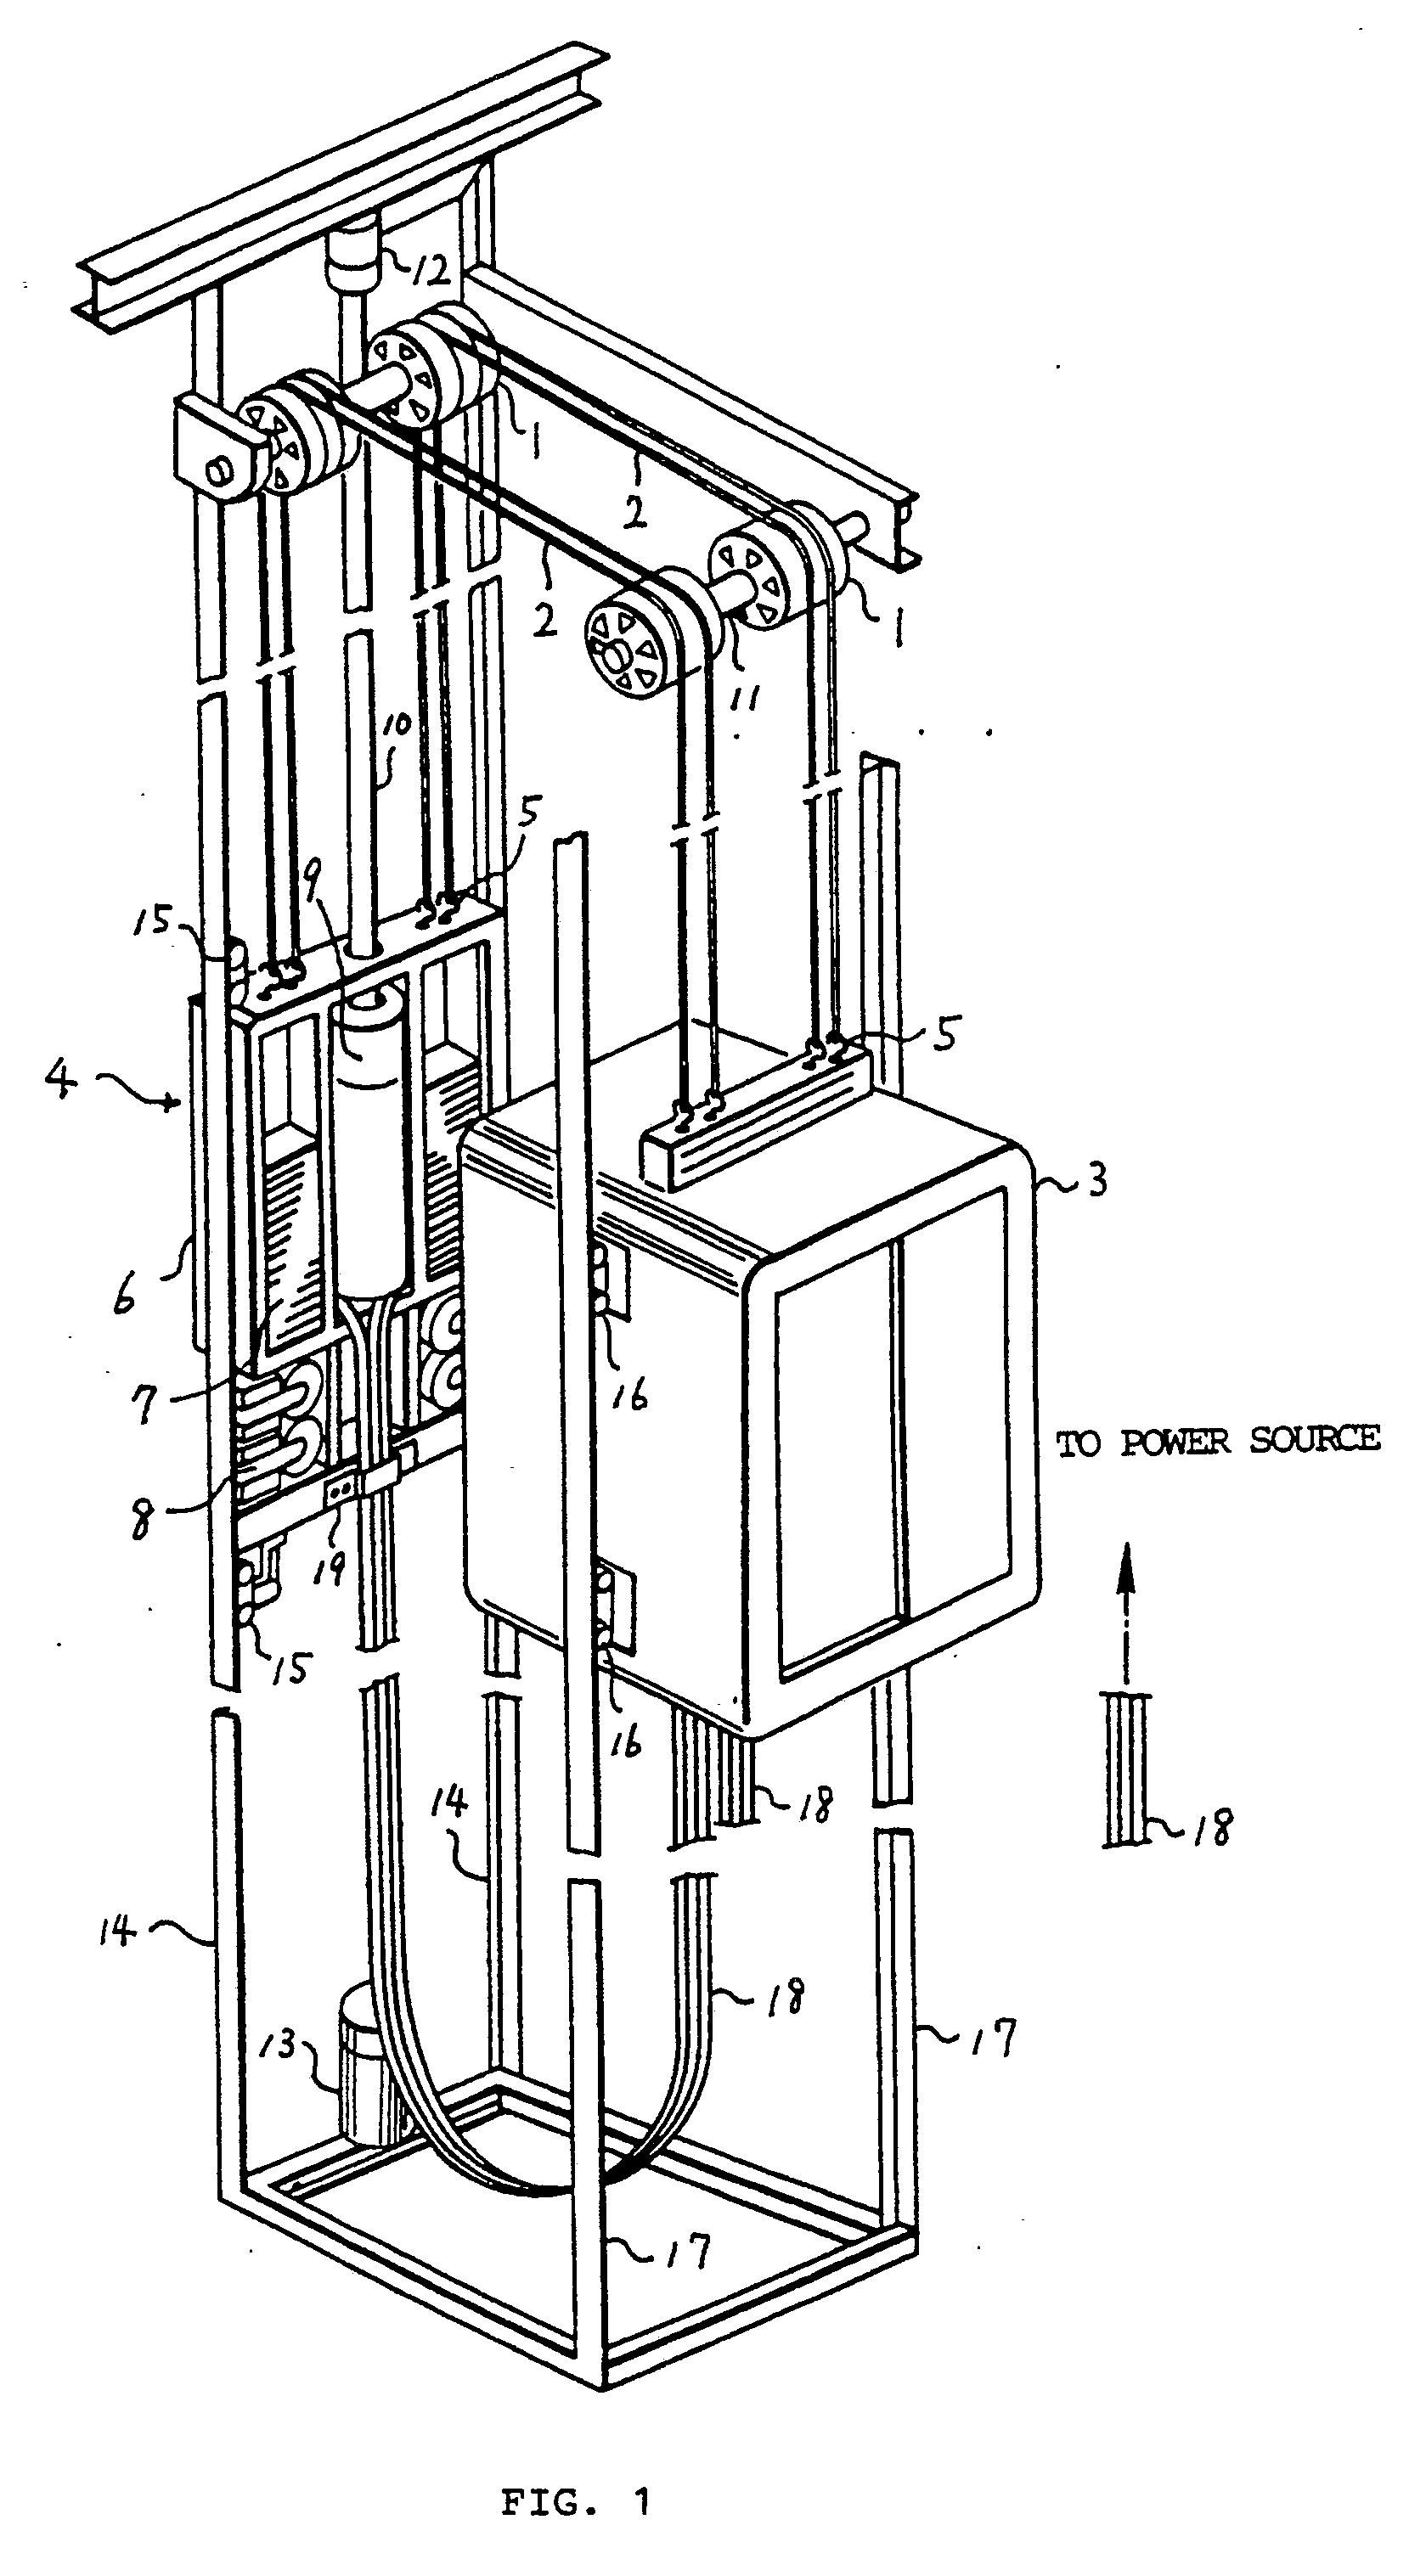 Otis Elevator Schematic Diagram Within Diagram Wiring And Engine